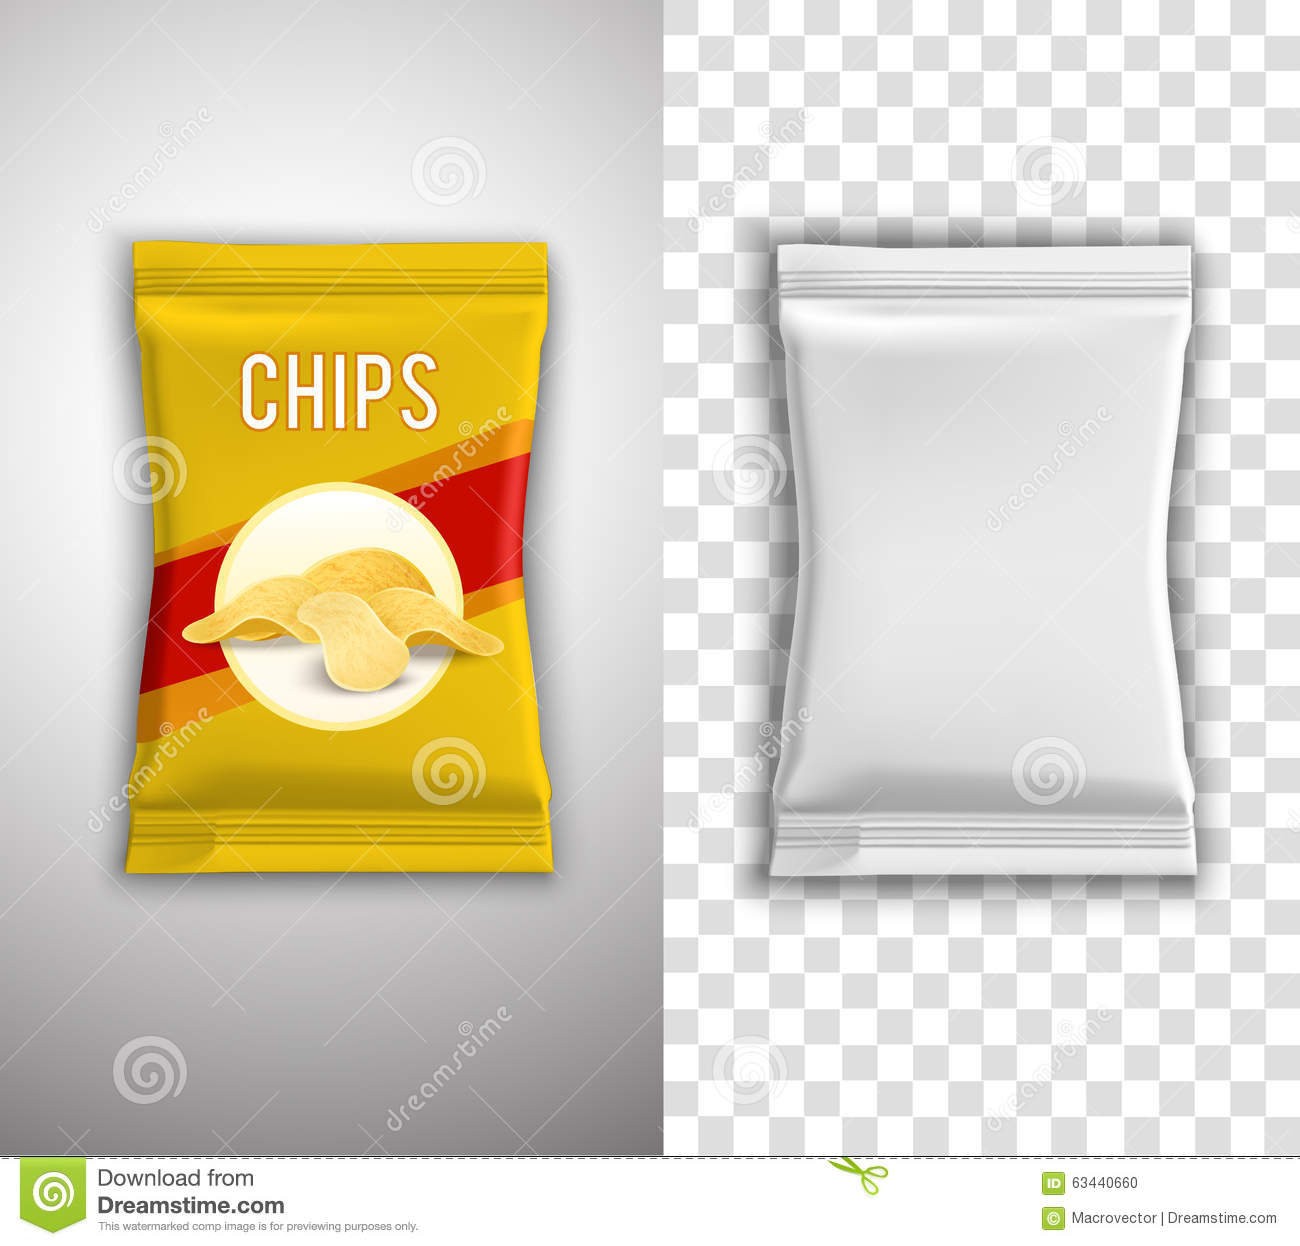 chips packaging design stock vector illustration of decorative